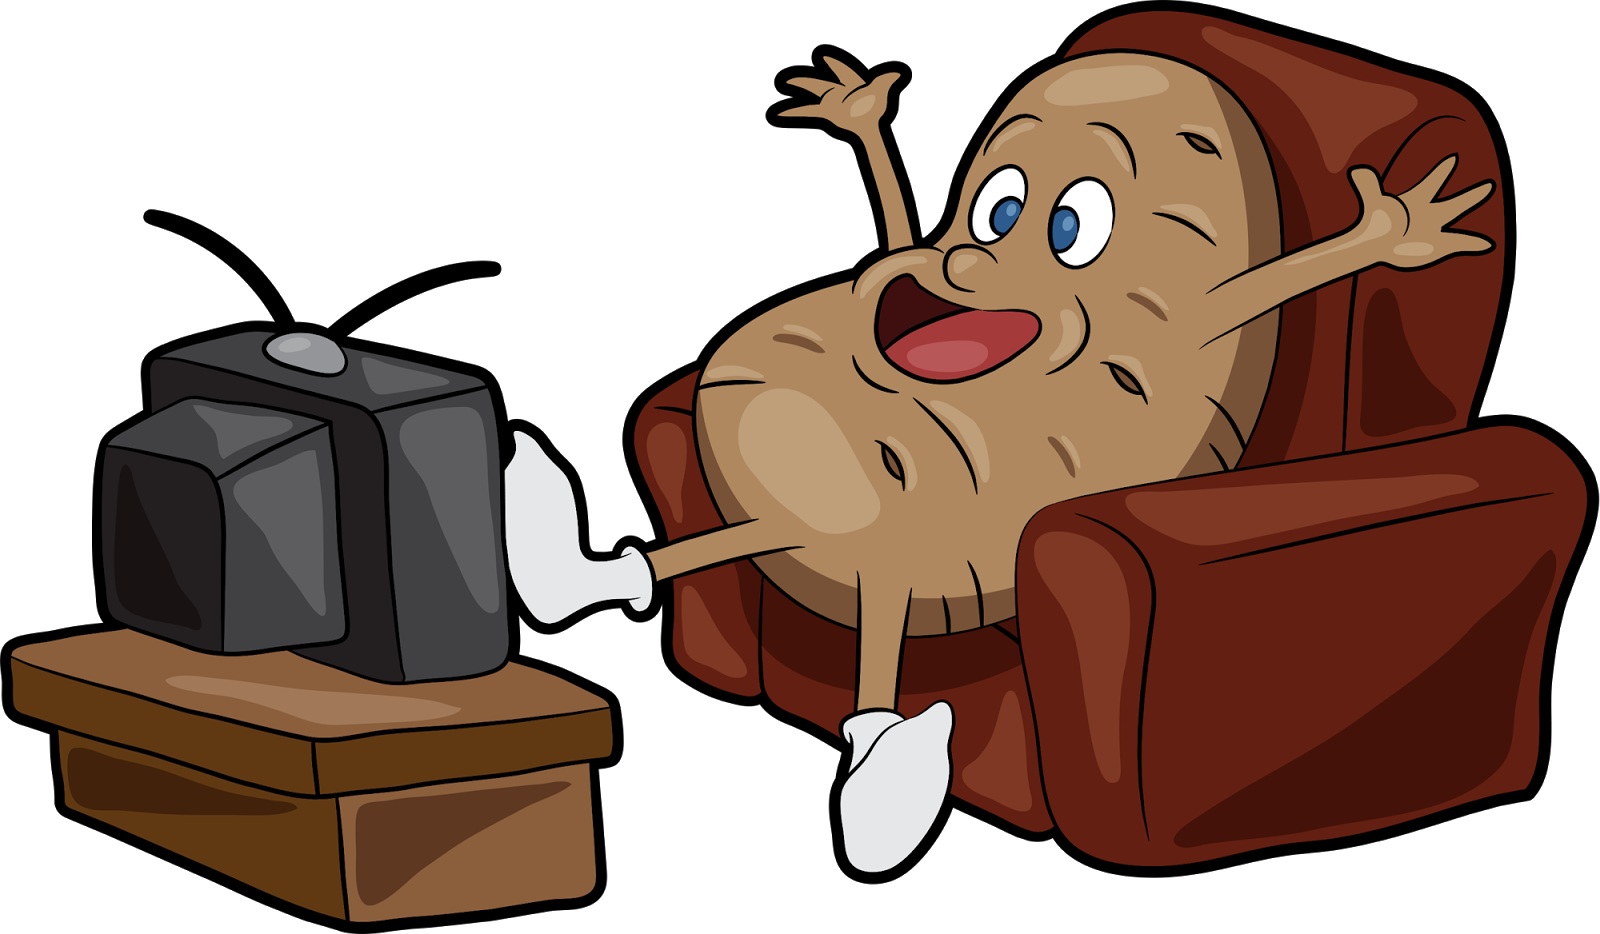 Clipart walking mobility. Couch potato news upcoming